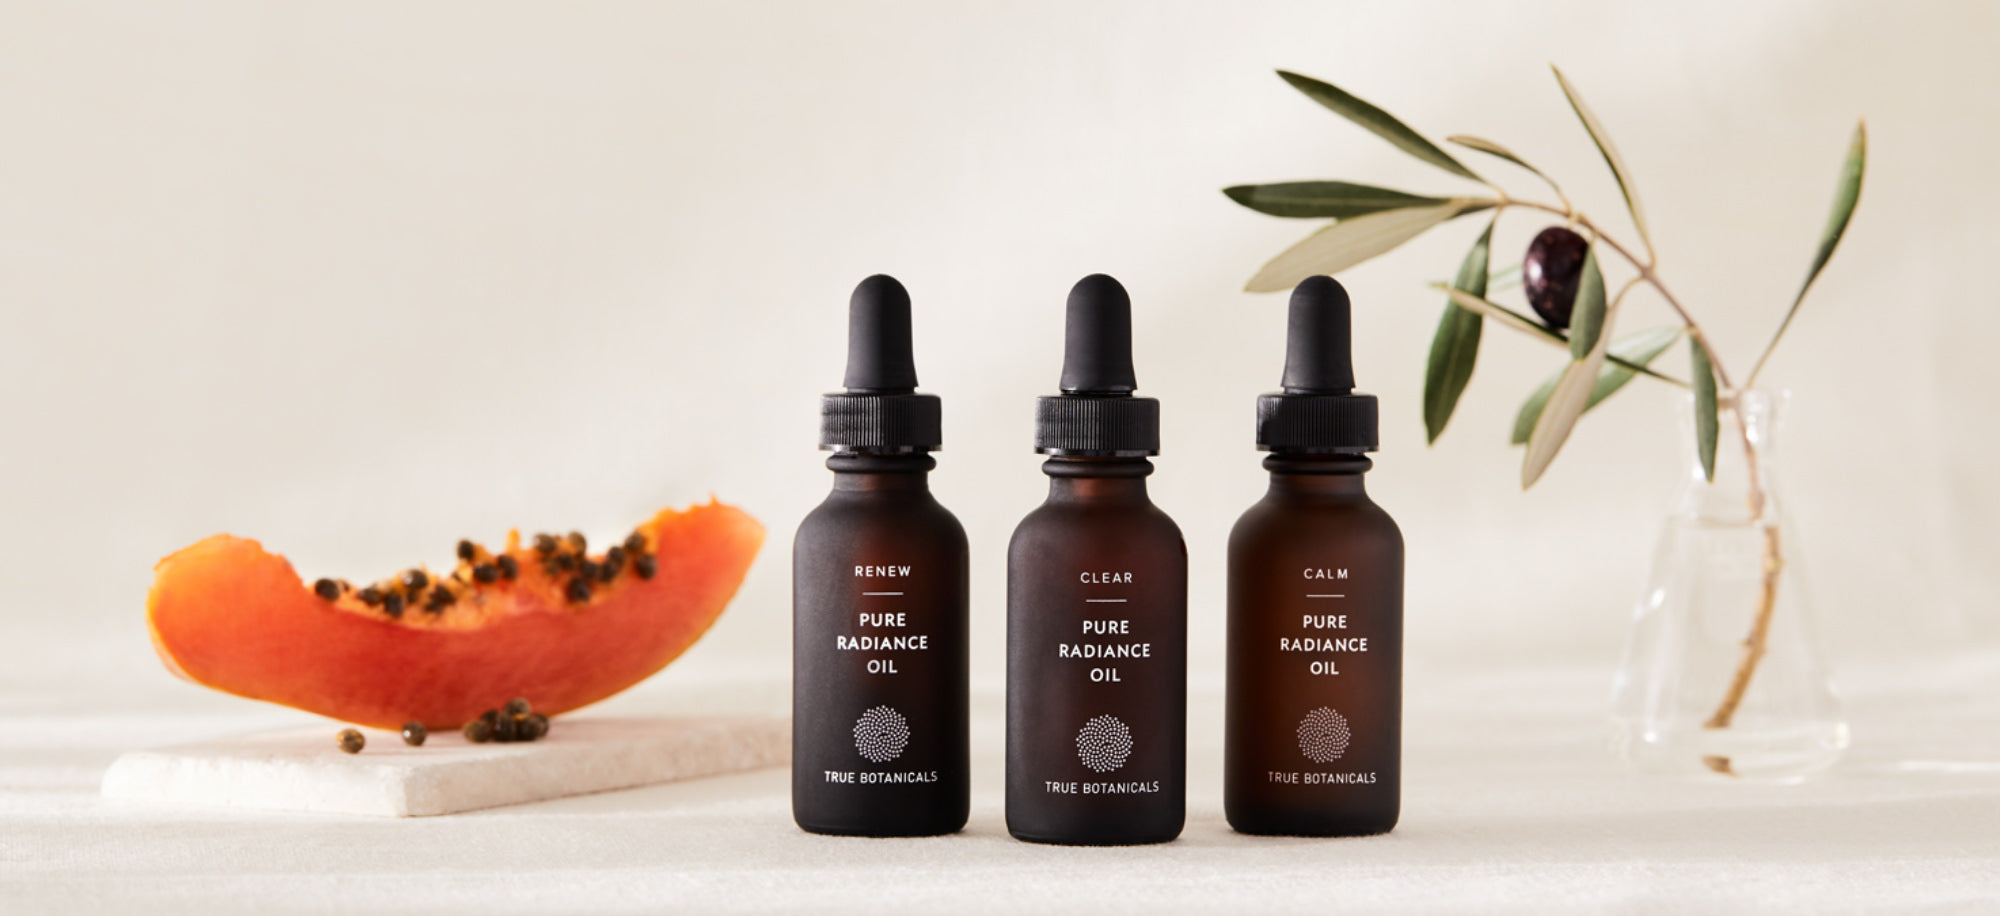 True Botanicals | Skincare with Natural & Organic Ingredients